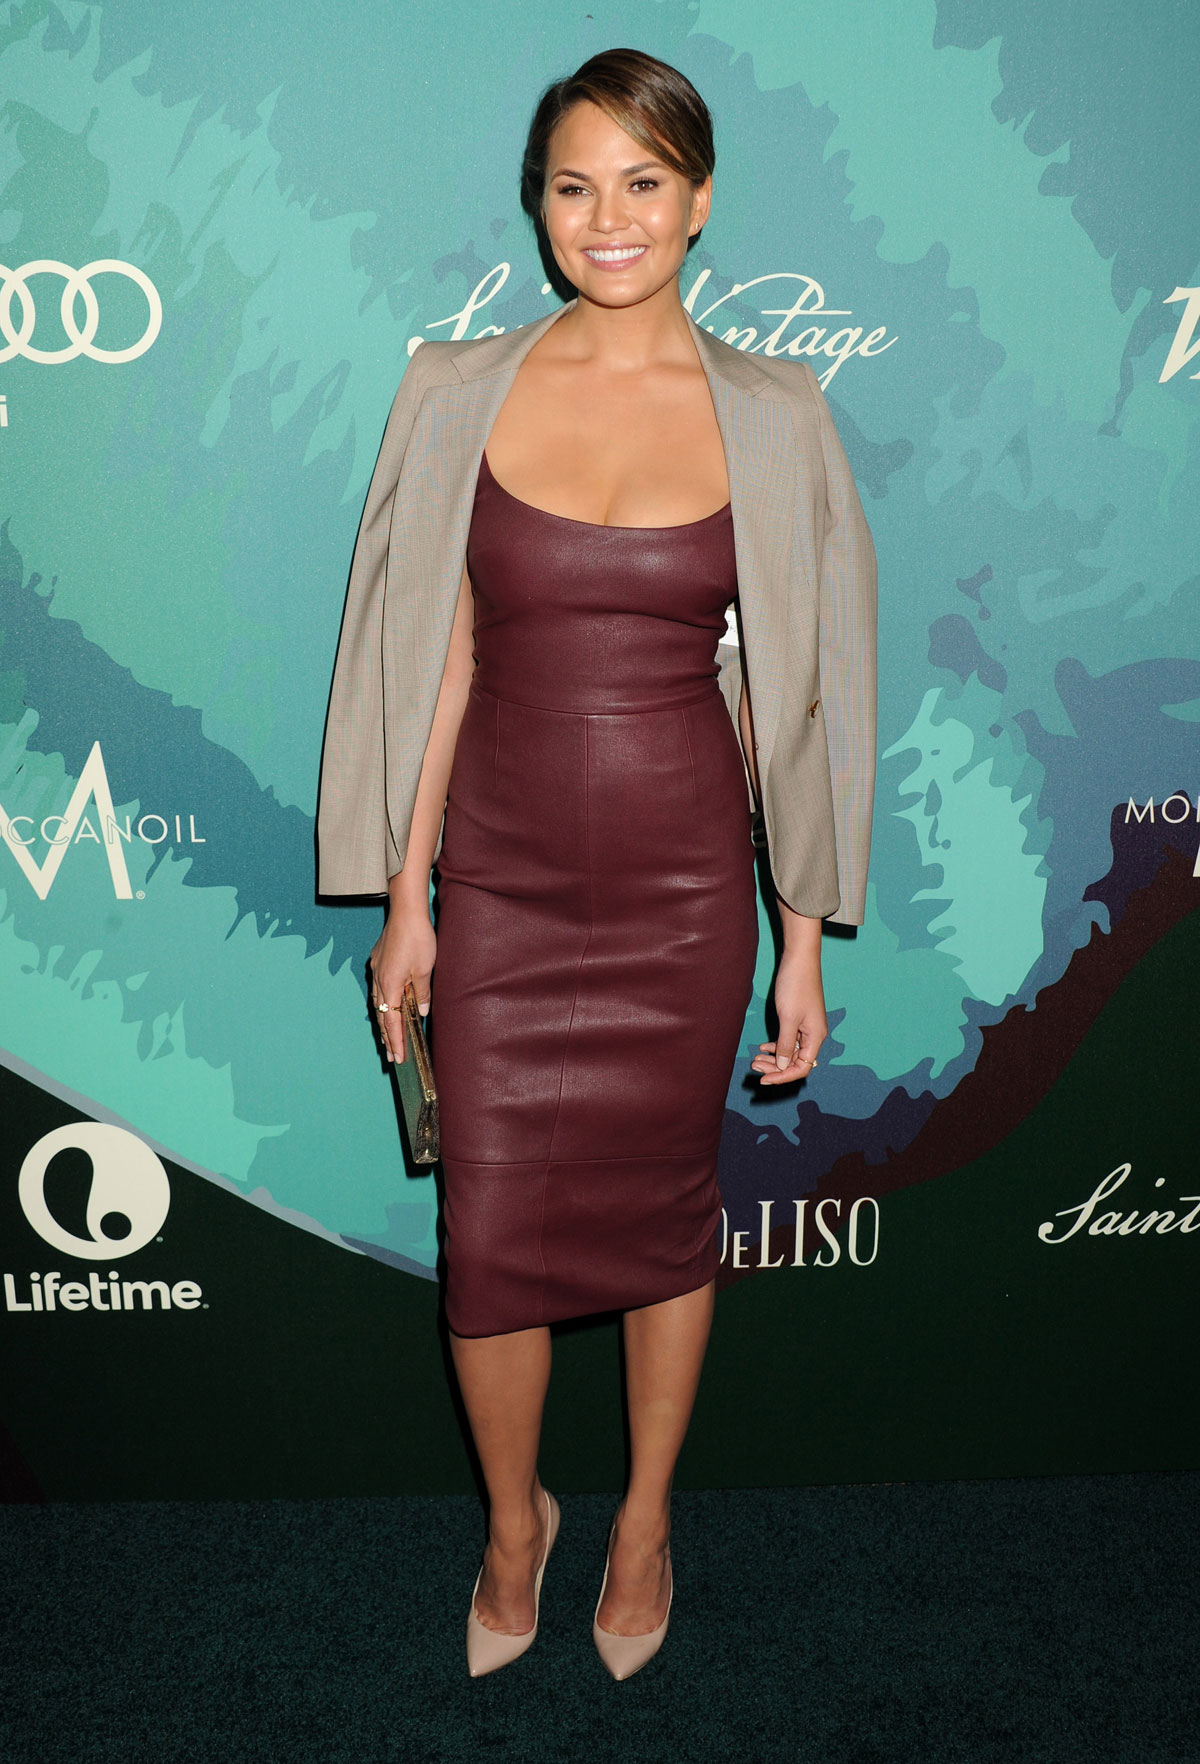 Chrissy Teigen attends 2014 Variety Power of Women presented